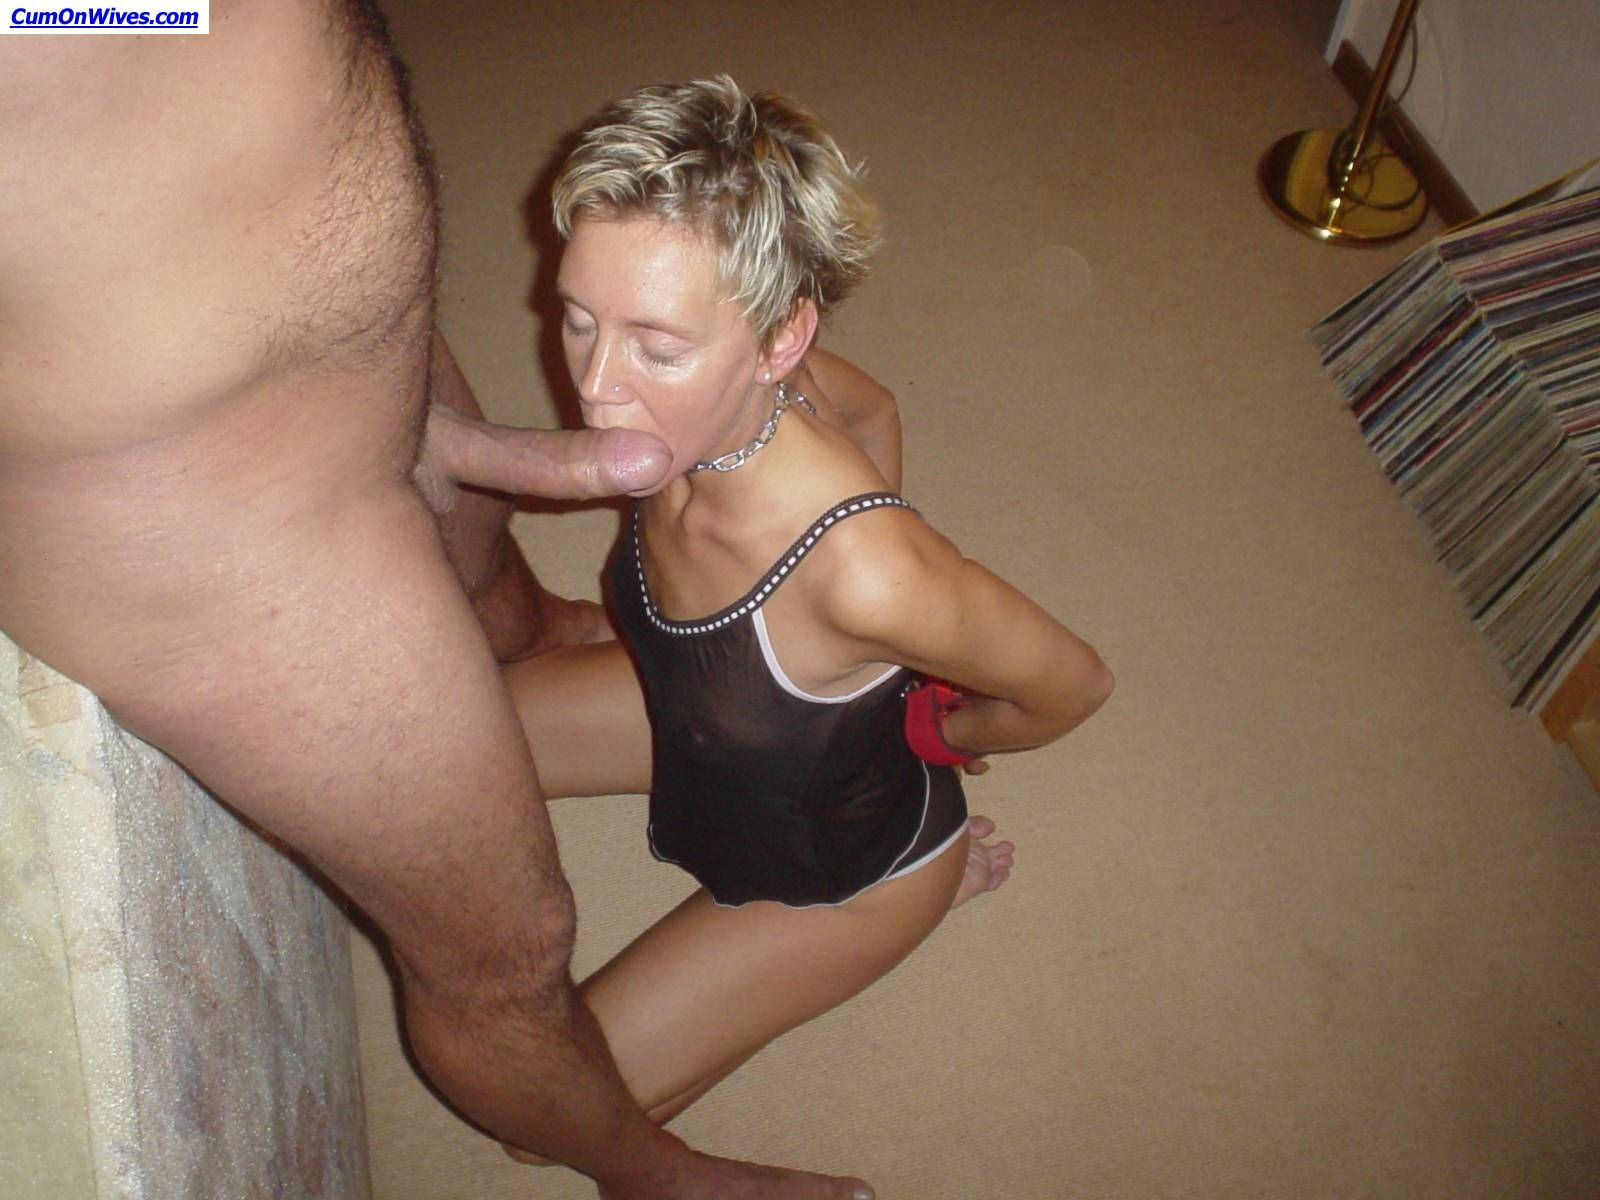 Fanatical juvenile wives drilled and facialed